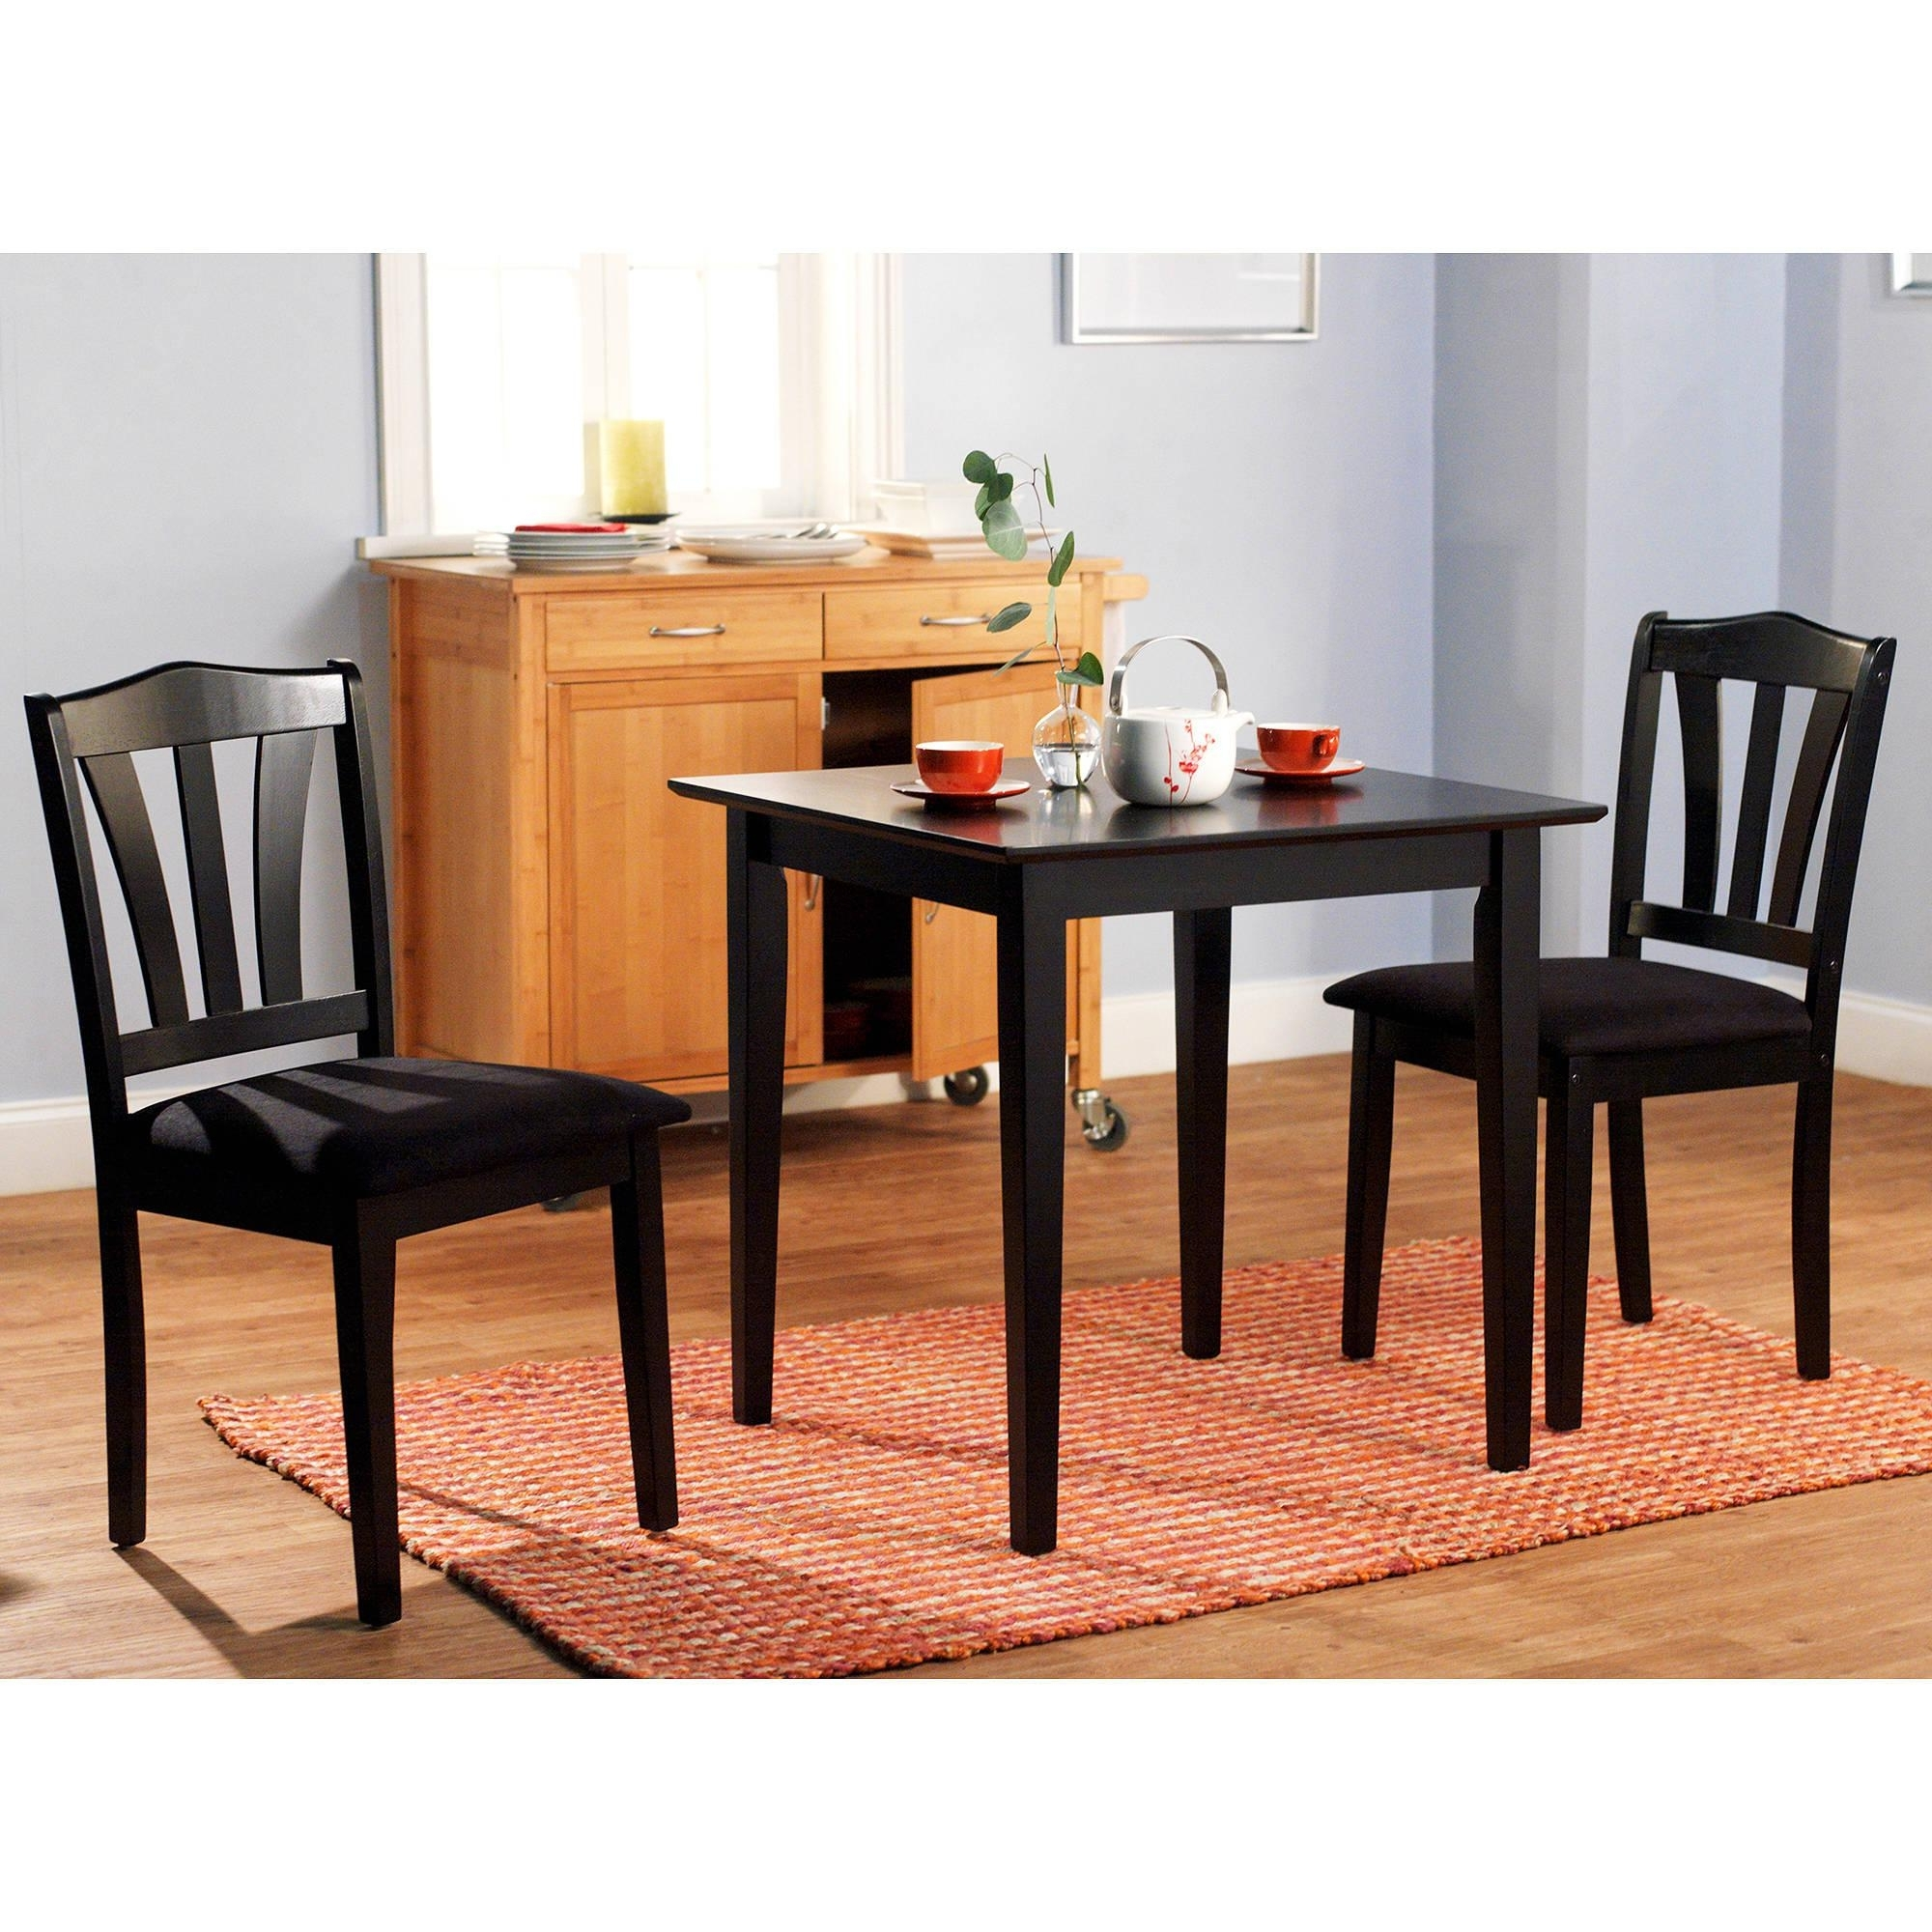 Popular 3 Piece Dining Set Table 2 Chairs Kitchen Room Wood Furniture For Dining Tables And 2 Chairs (View 19 of 25)